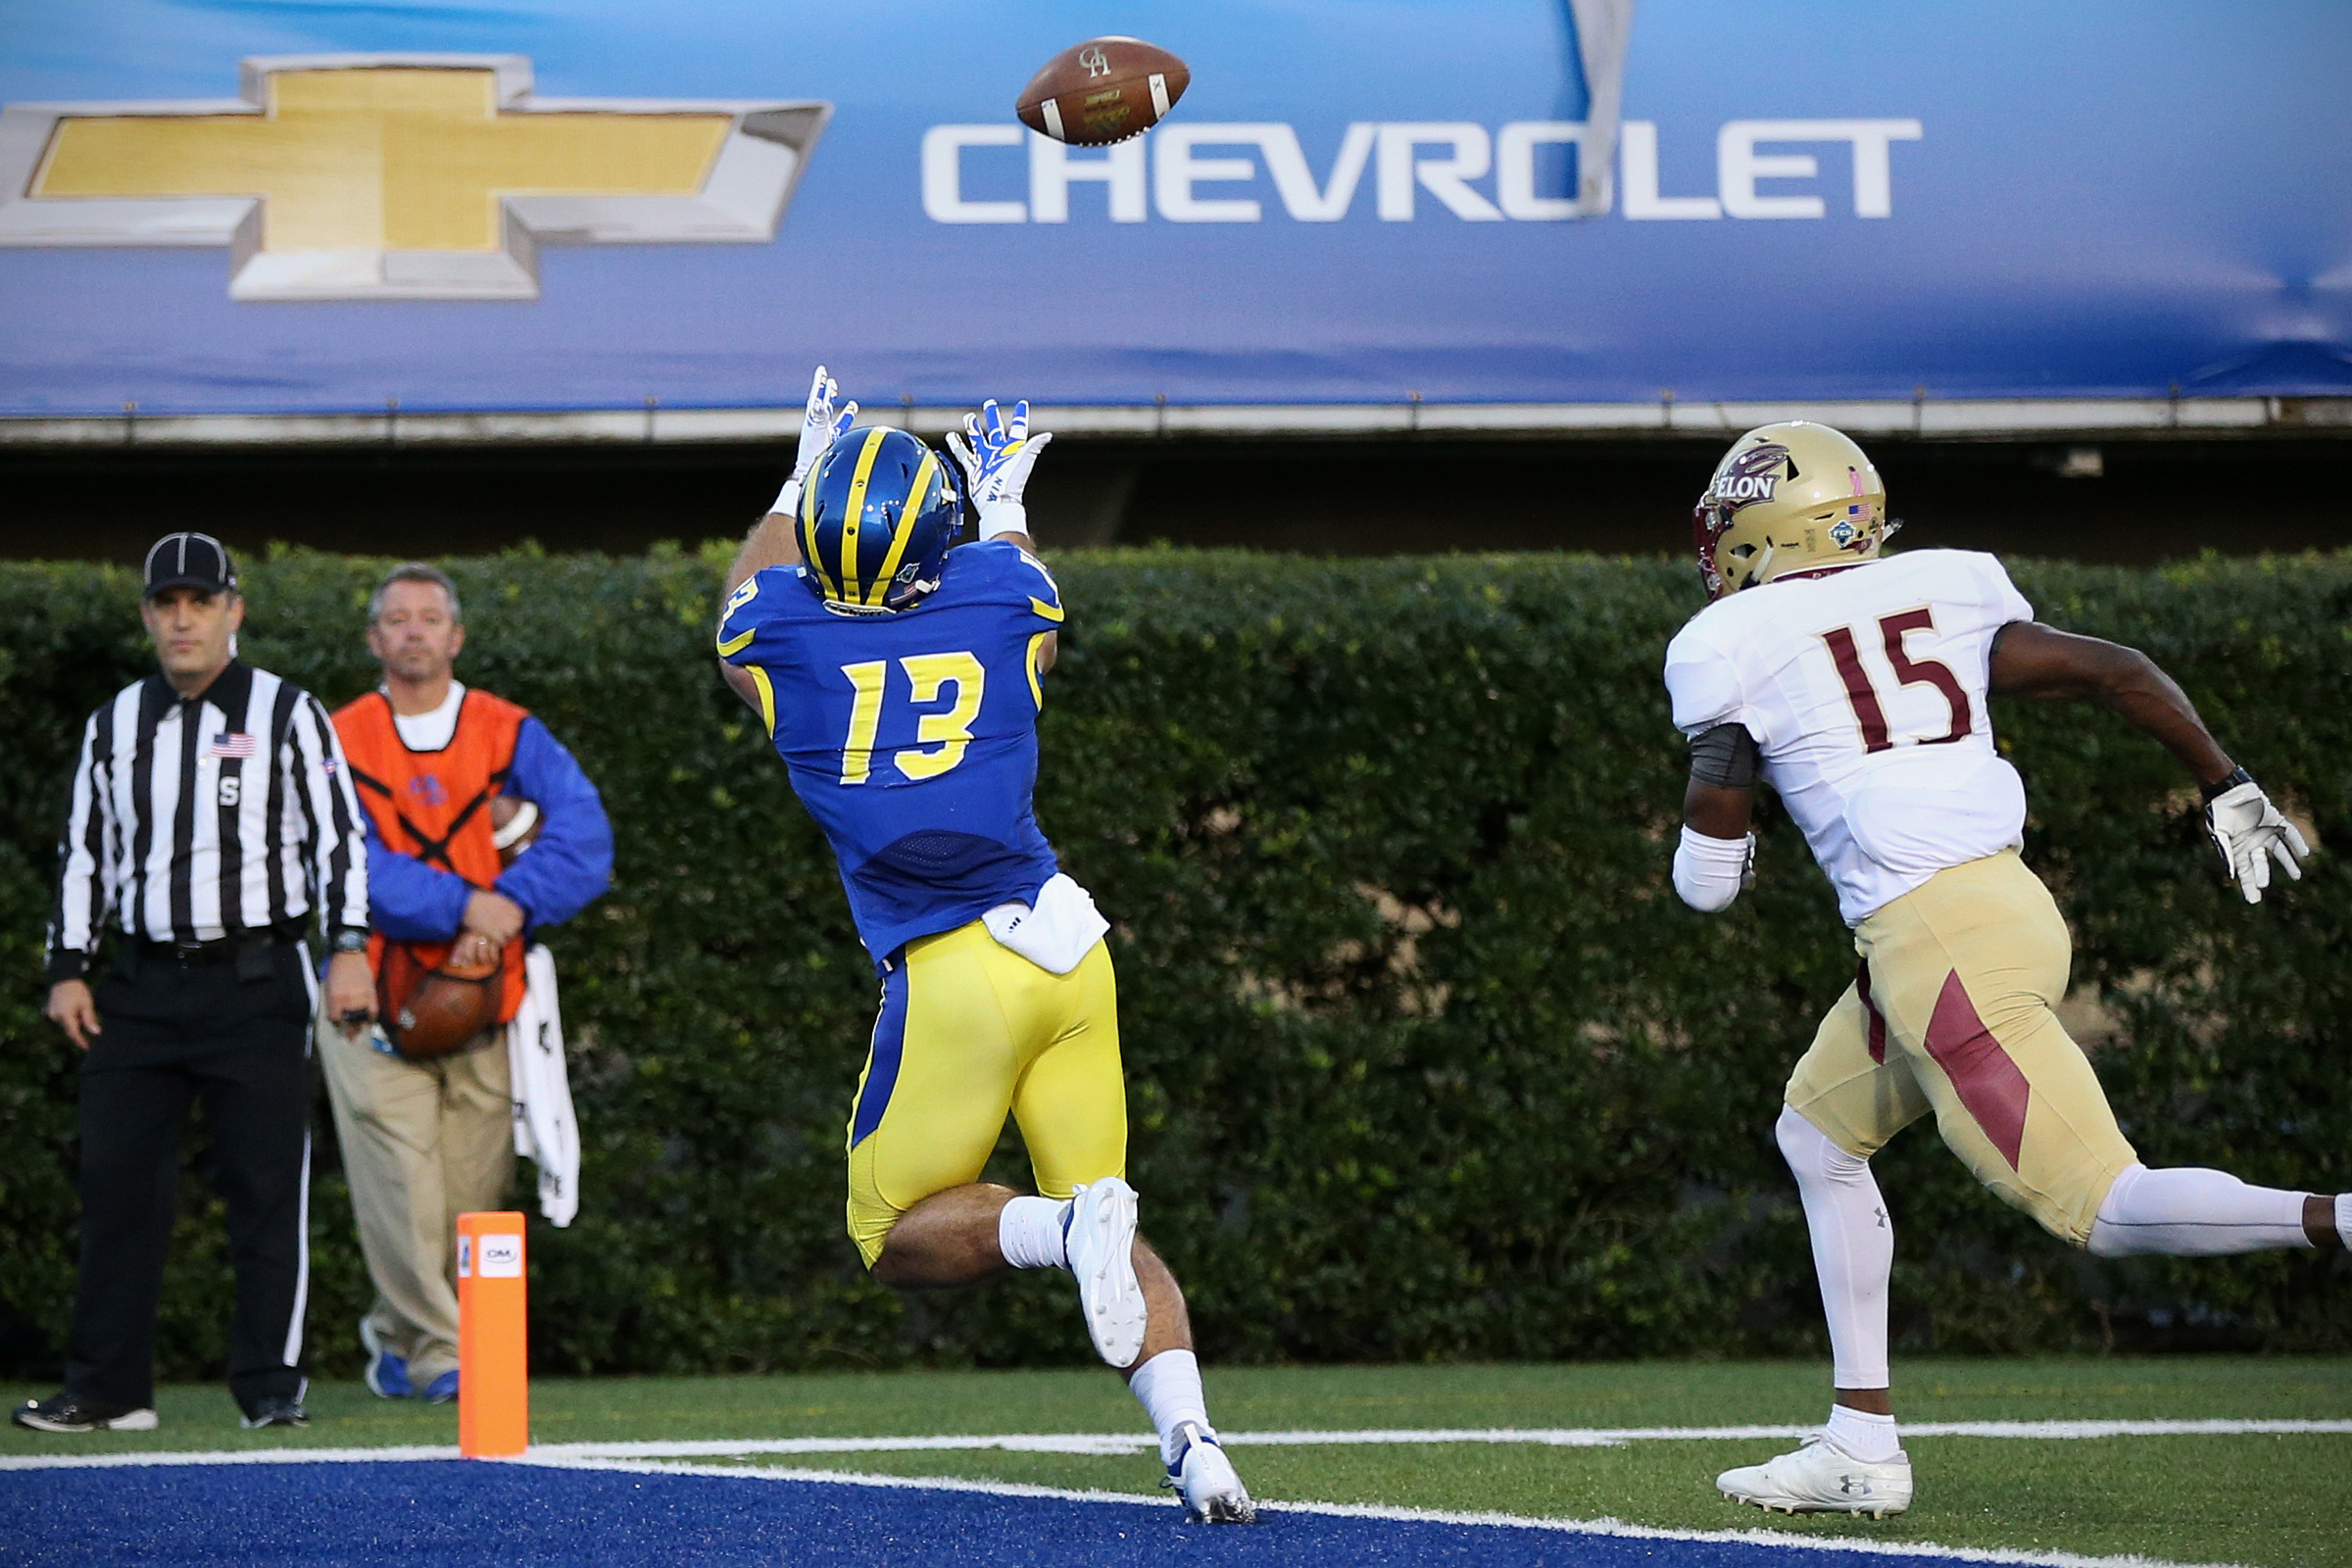 Delaware wide receiver Vinny Papale (13) catches a touchdown pass in front of Elon defensive back Jarquez Bizzell (15) during a game at Delaware Stadium in Newark, Del., on Saturday, Oct. 13, 2018. Delaware won 28-16. TIM TAI / Staff Photographer